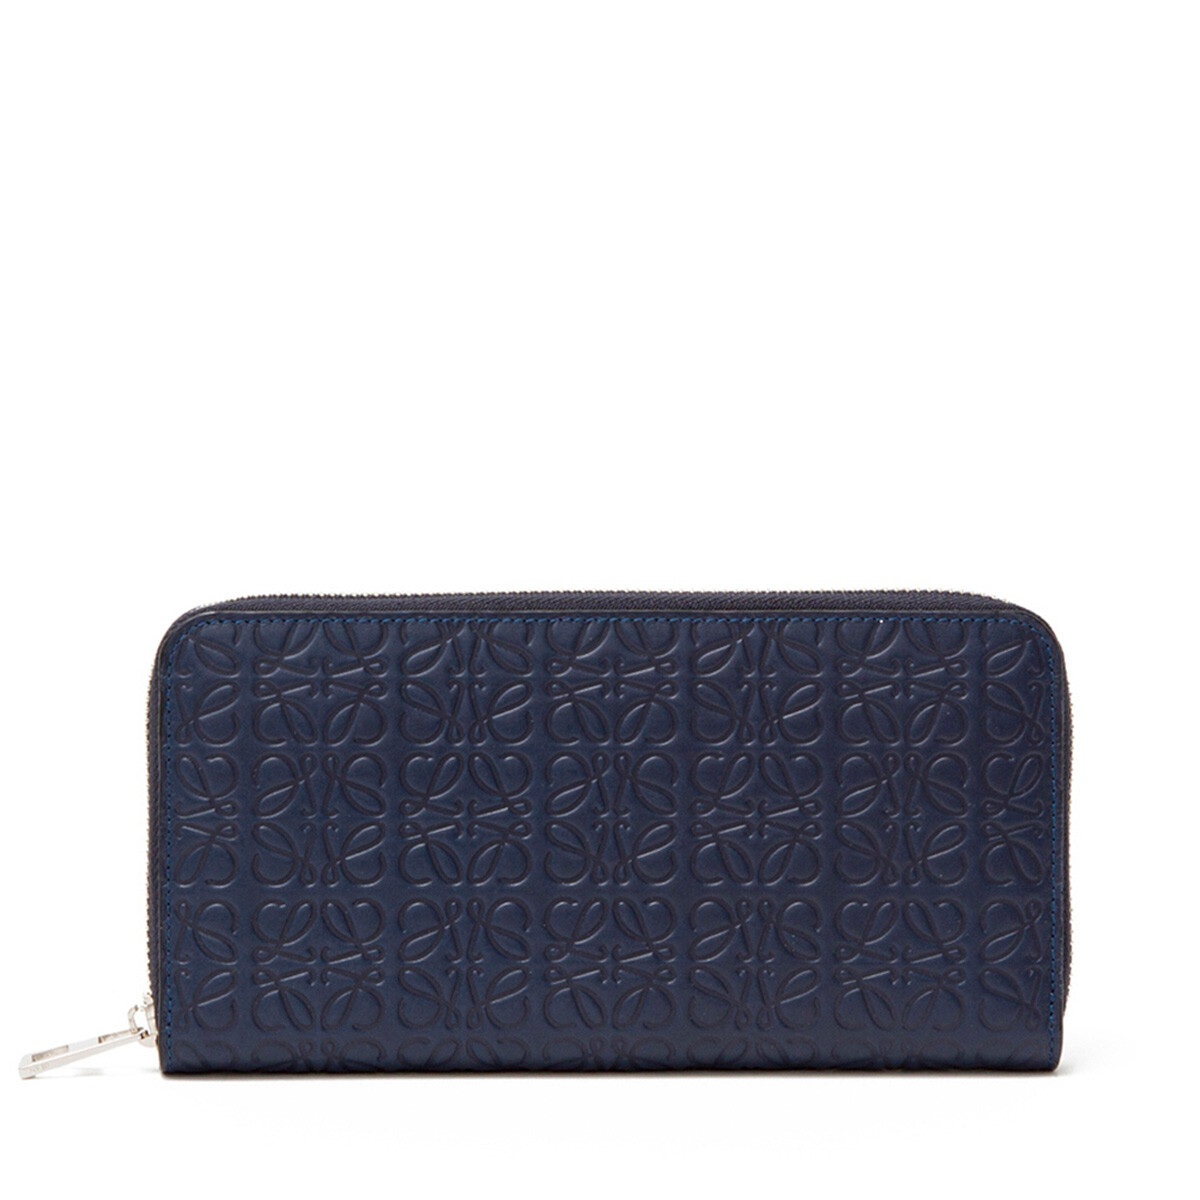 LOEWE Repeat Zip Around Wallet 海军蓝 front